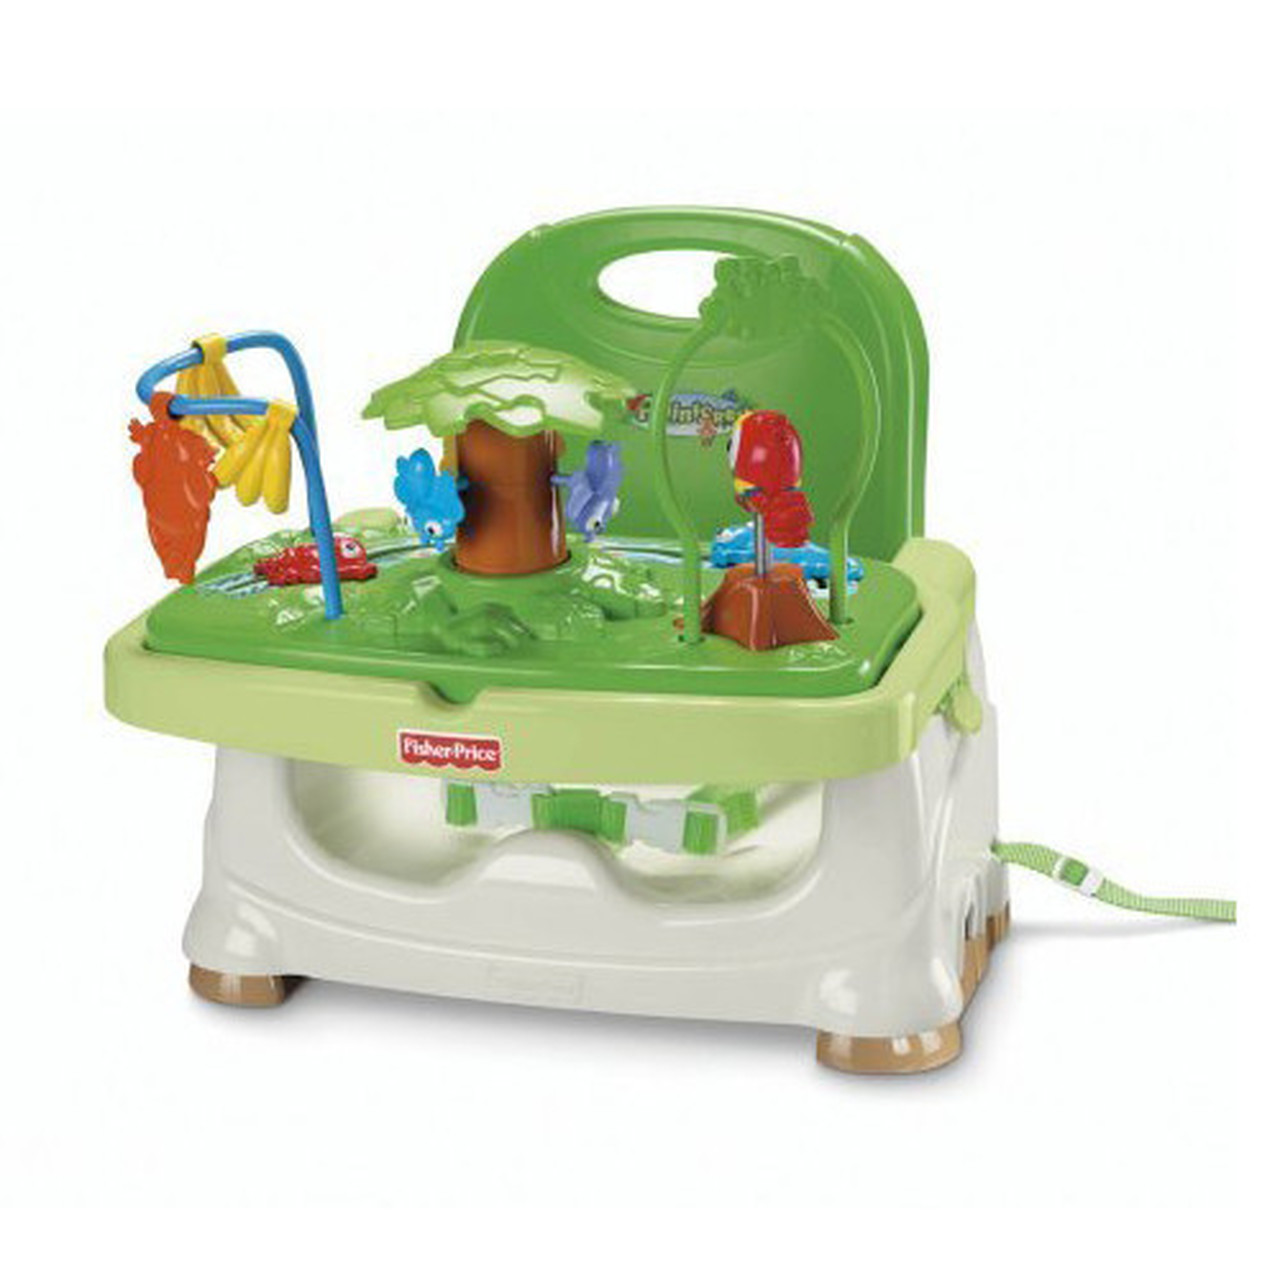 Fisher-Price Booster Seat, Rainforest